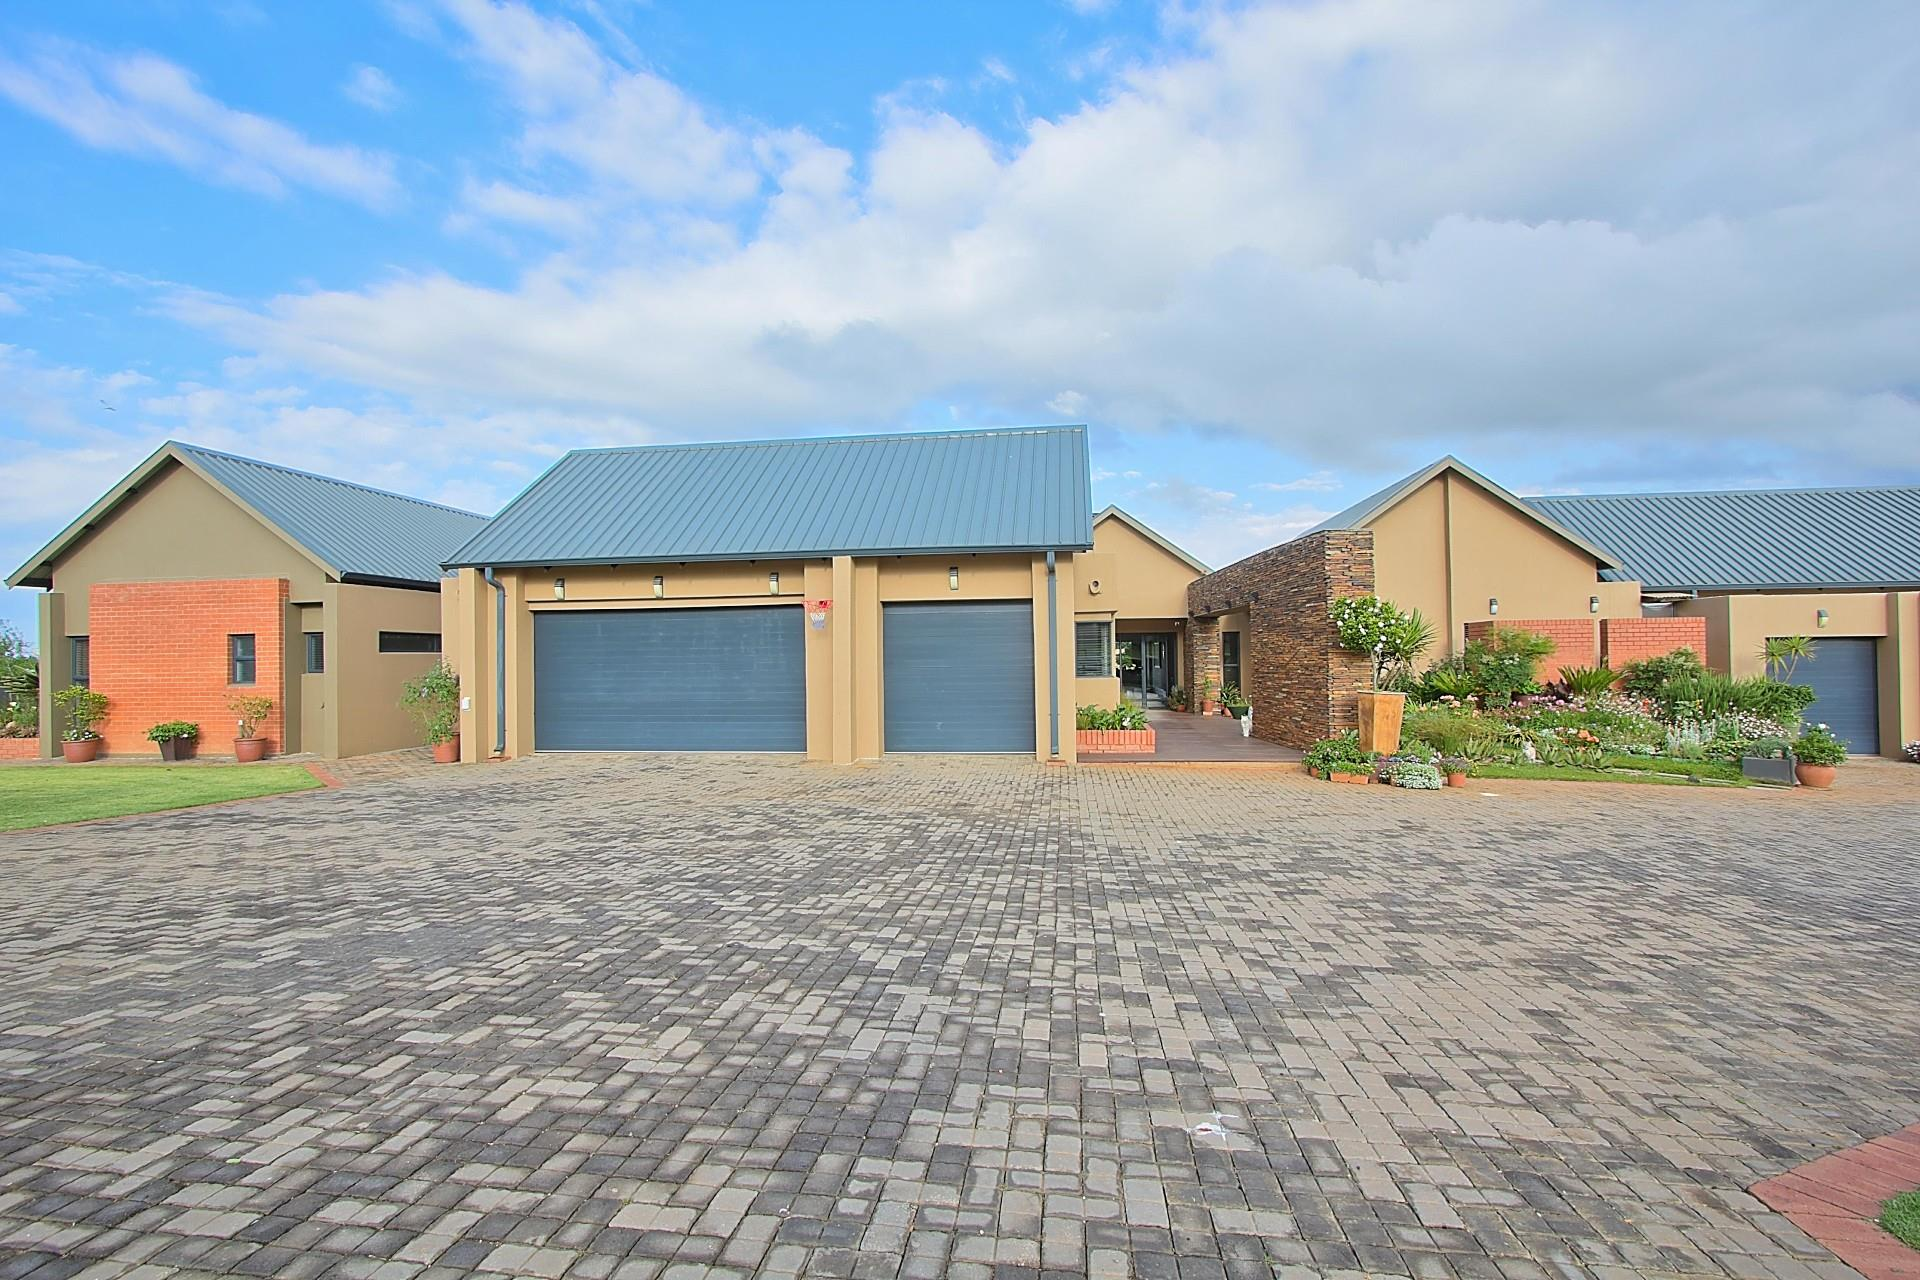 6 Elliodor, Dunblane Lifestyle & Equestrian Estate, Kempton Park - ZAF (photo 2)